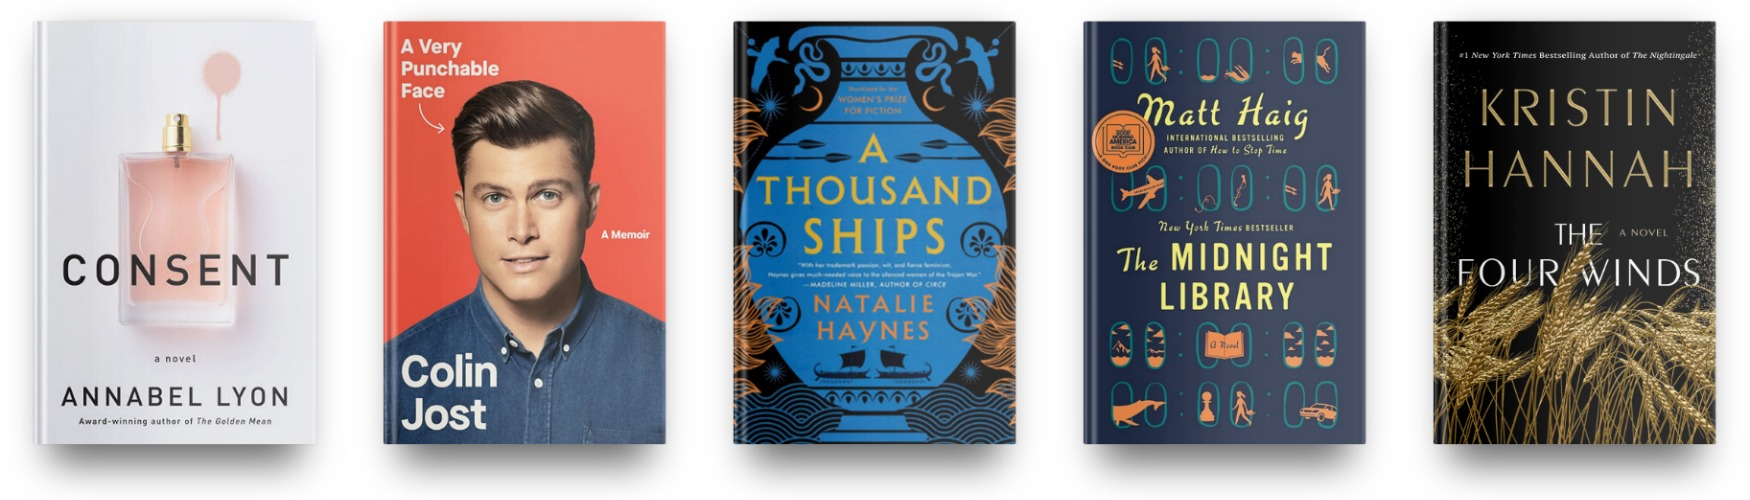 Consent by Annabel Lyon, A Very Punchable Face by Colin Jost, A Thousand Ships by Natalie Haynes, The Midnight Library by Matt Haig, and The Four Winds by Kristin Hannah